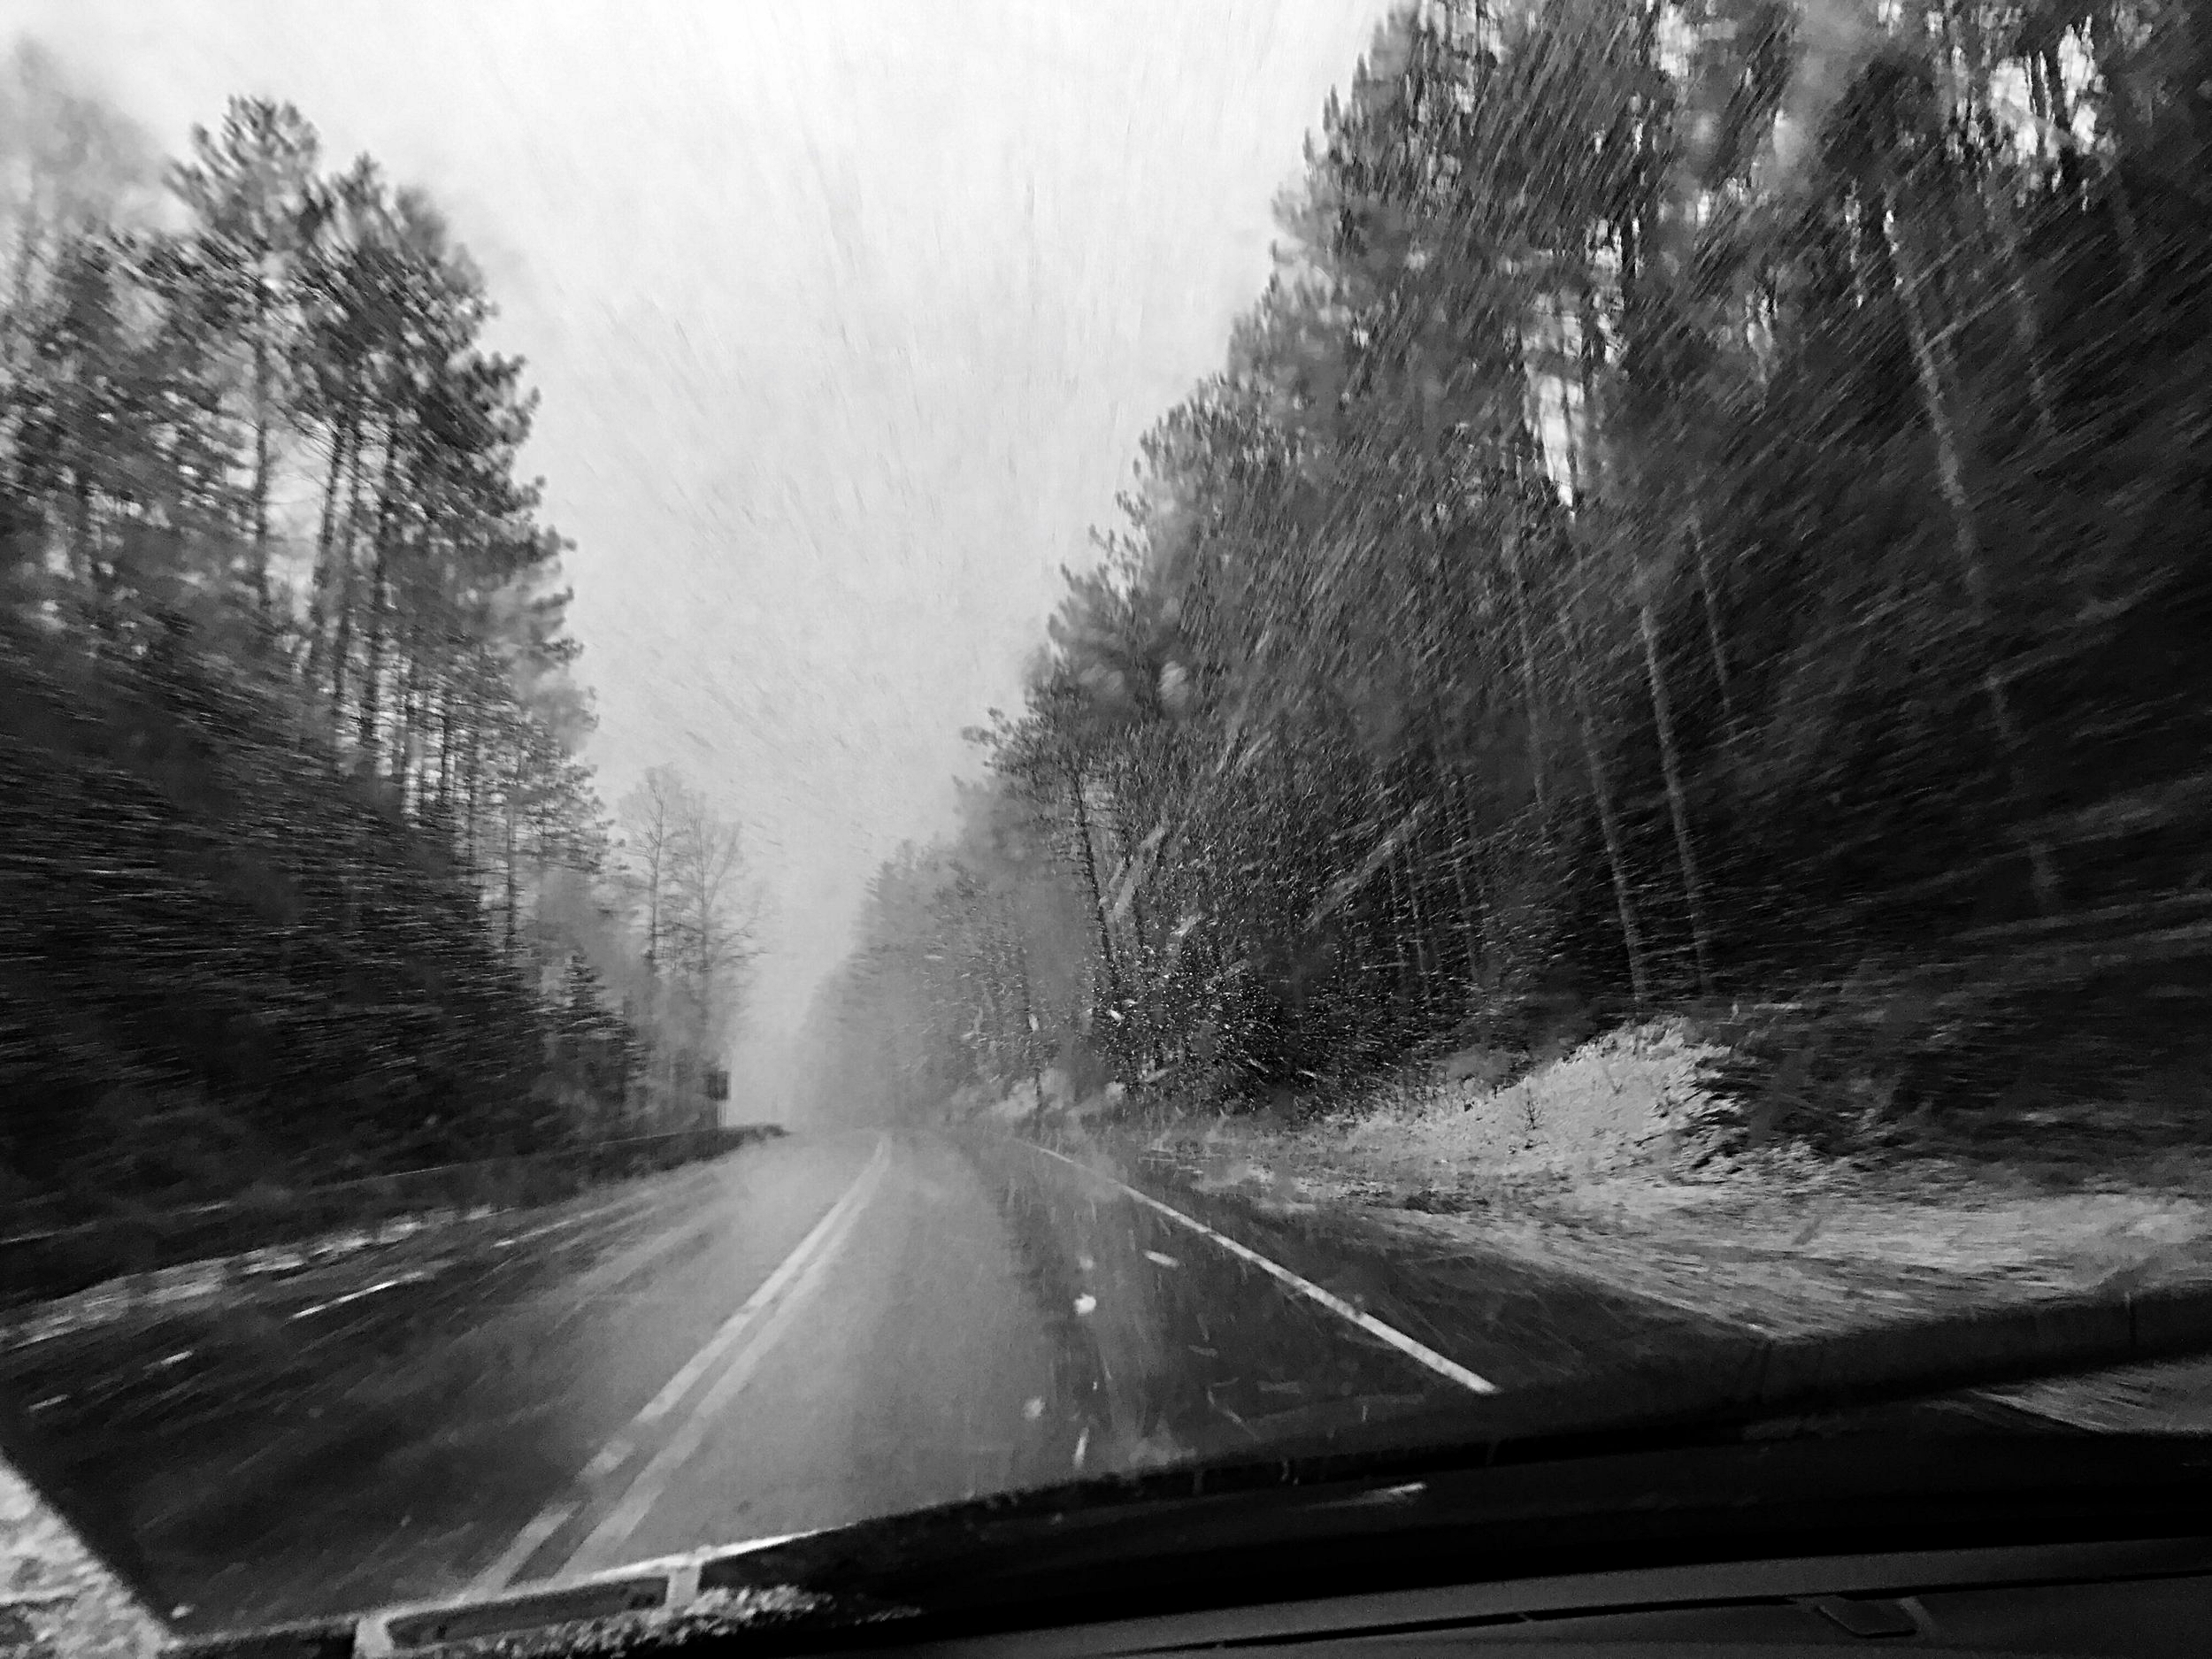 En route to Five Points Correctional Facility — one of Chelsia's many trips to talk with inmate, David Sweat. (Chelsia Rose Marcius/January 2017)